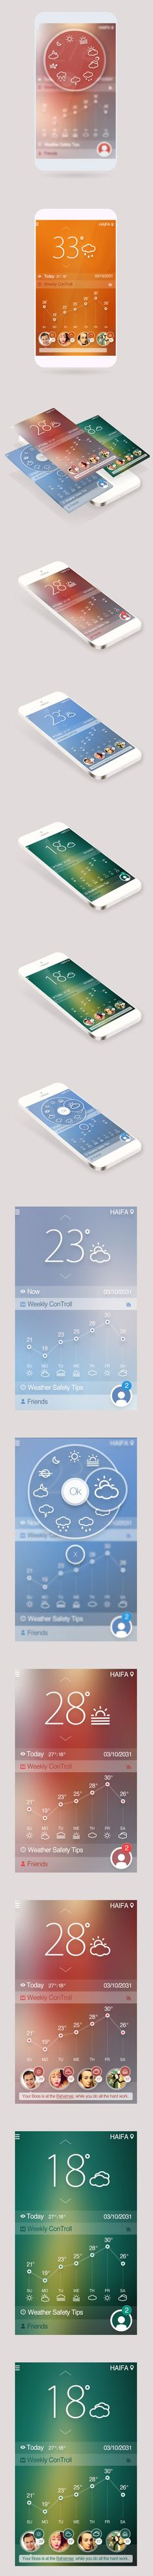 Weather App #ui #design #app #iOS #ux